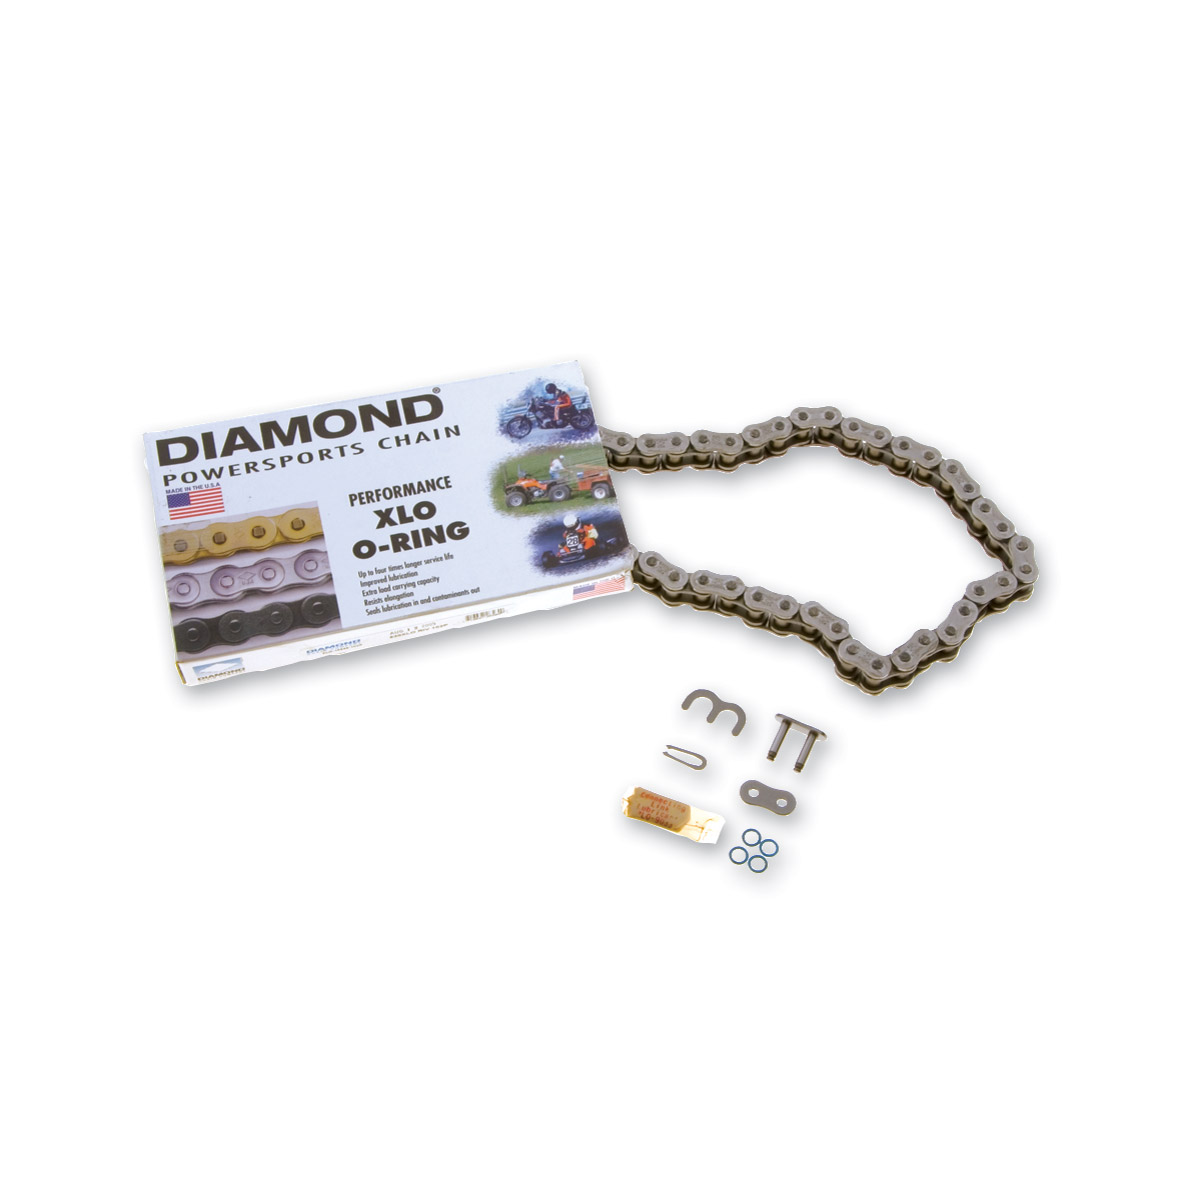 Diamond Chain Company XLO O-ring Chain